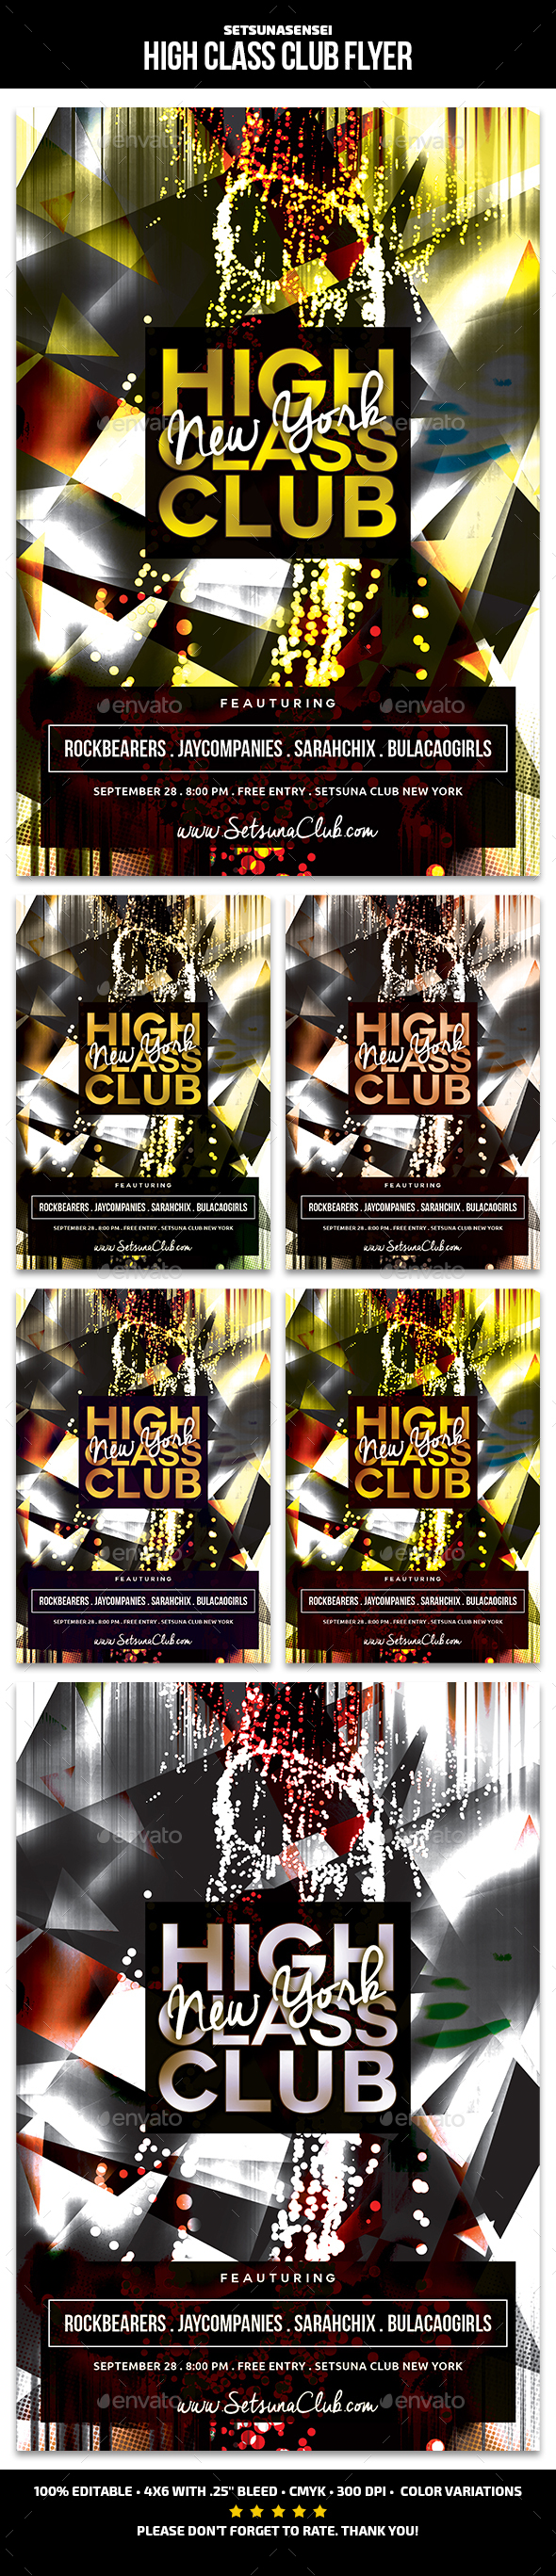 High Class Club Flyer - Clubs & Parties Events